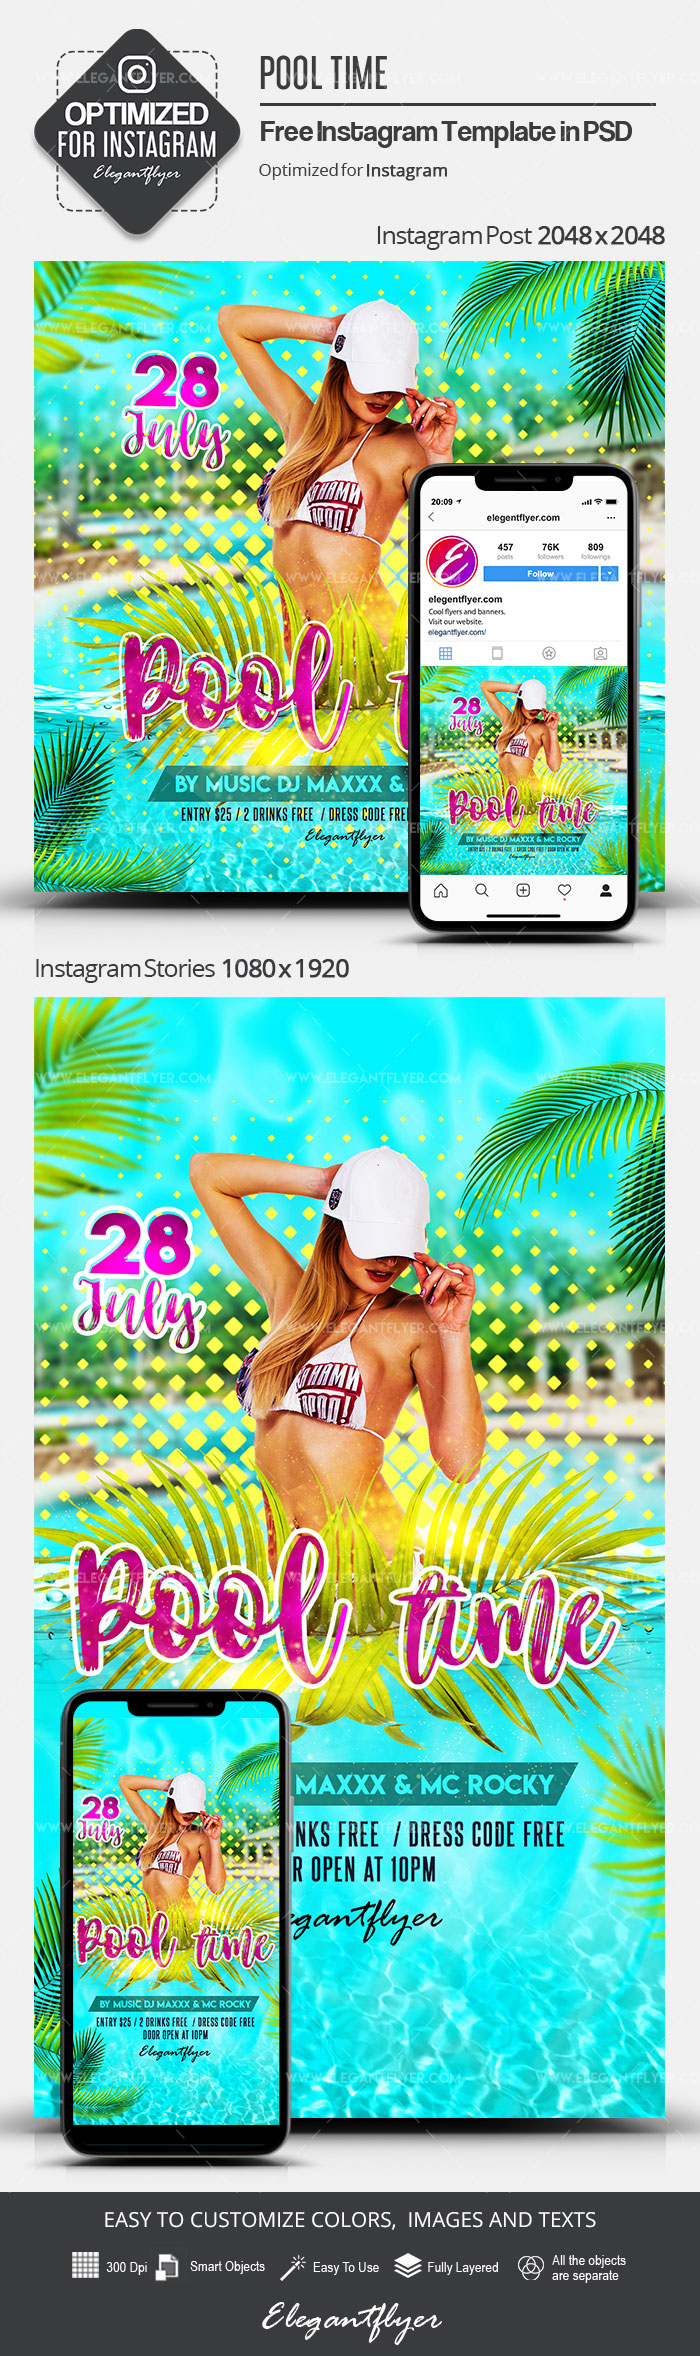 Pool Time – Free Instagram Stories Template in PSD + Post Templates